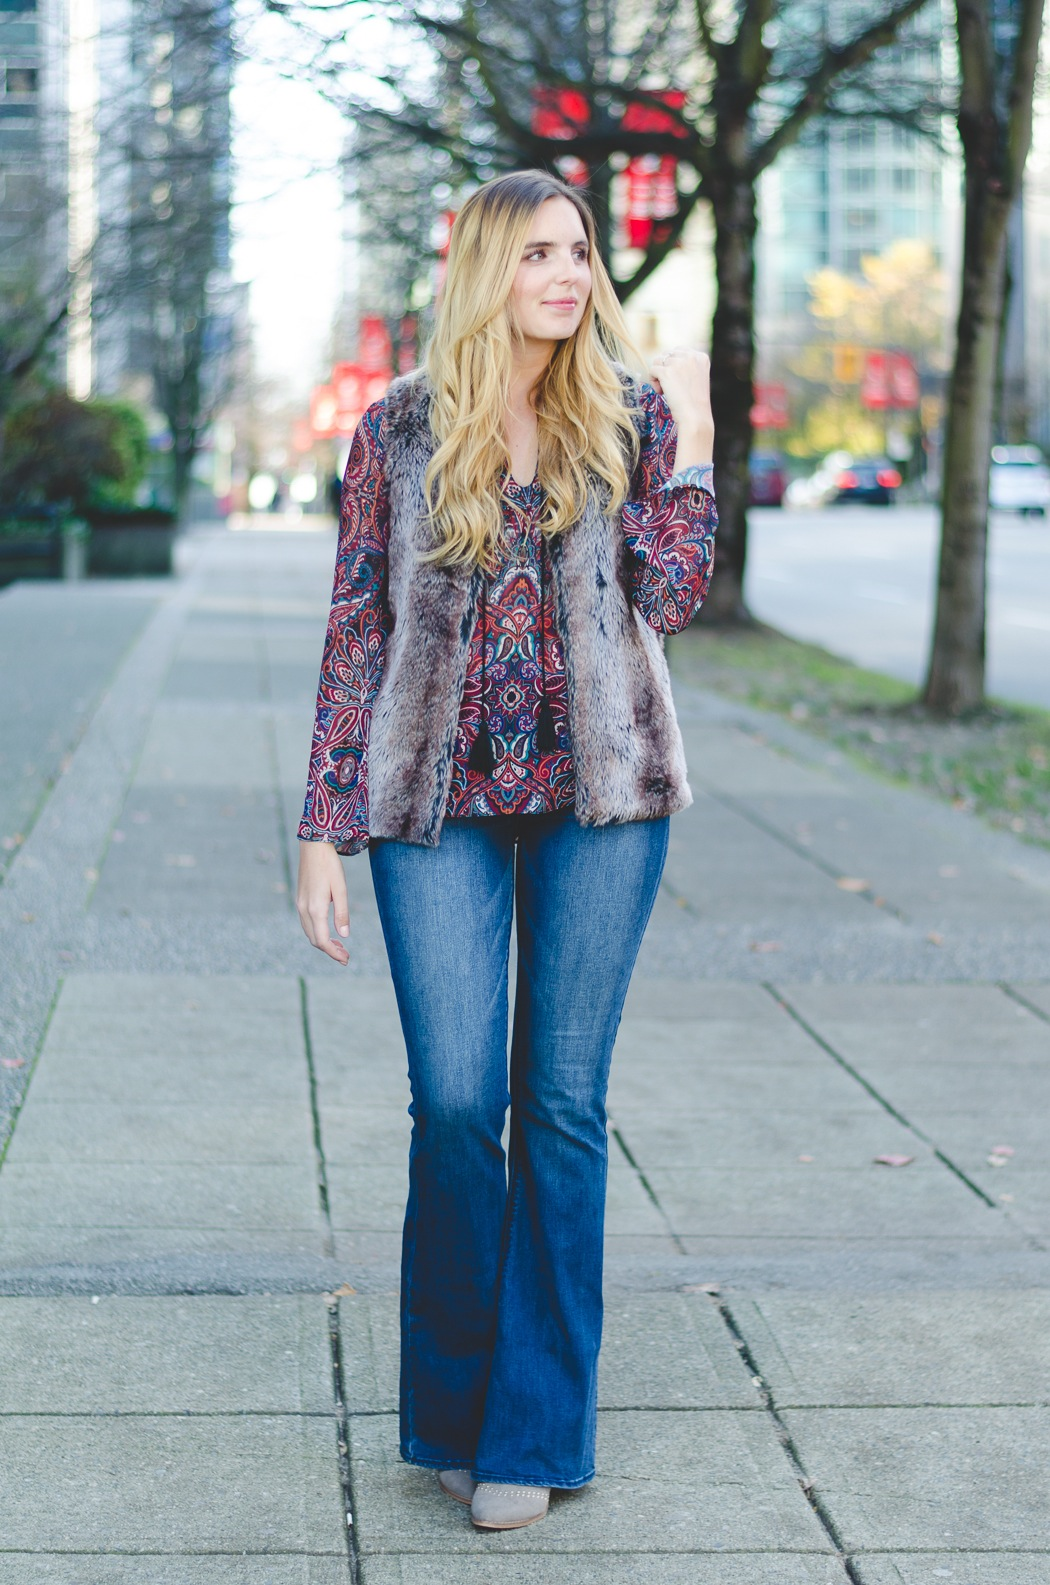 how-to-look-stylish-in-flared-jeans